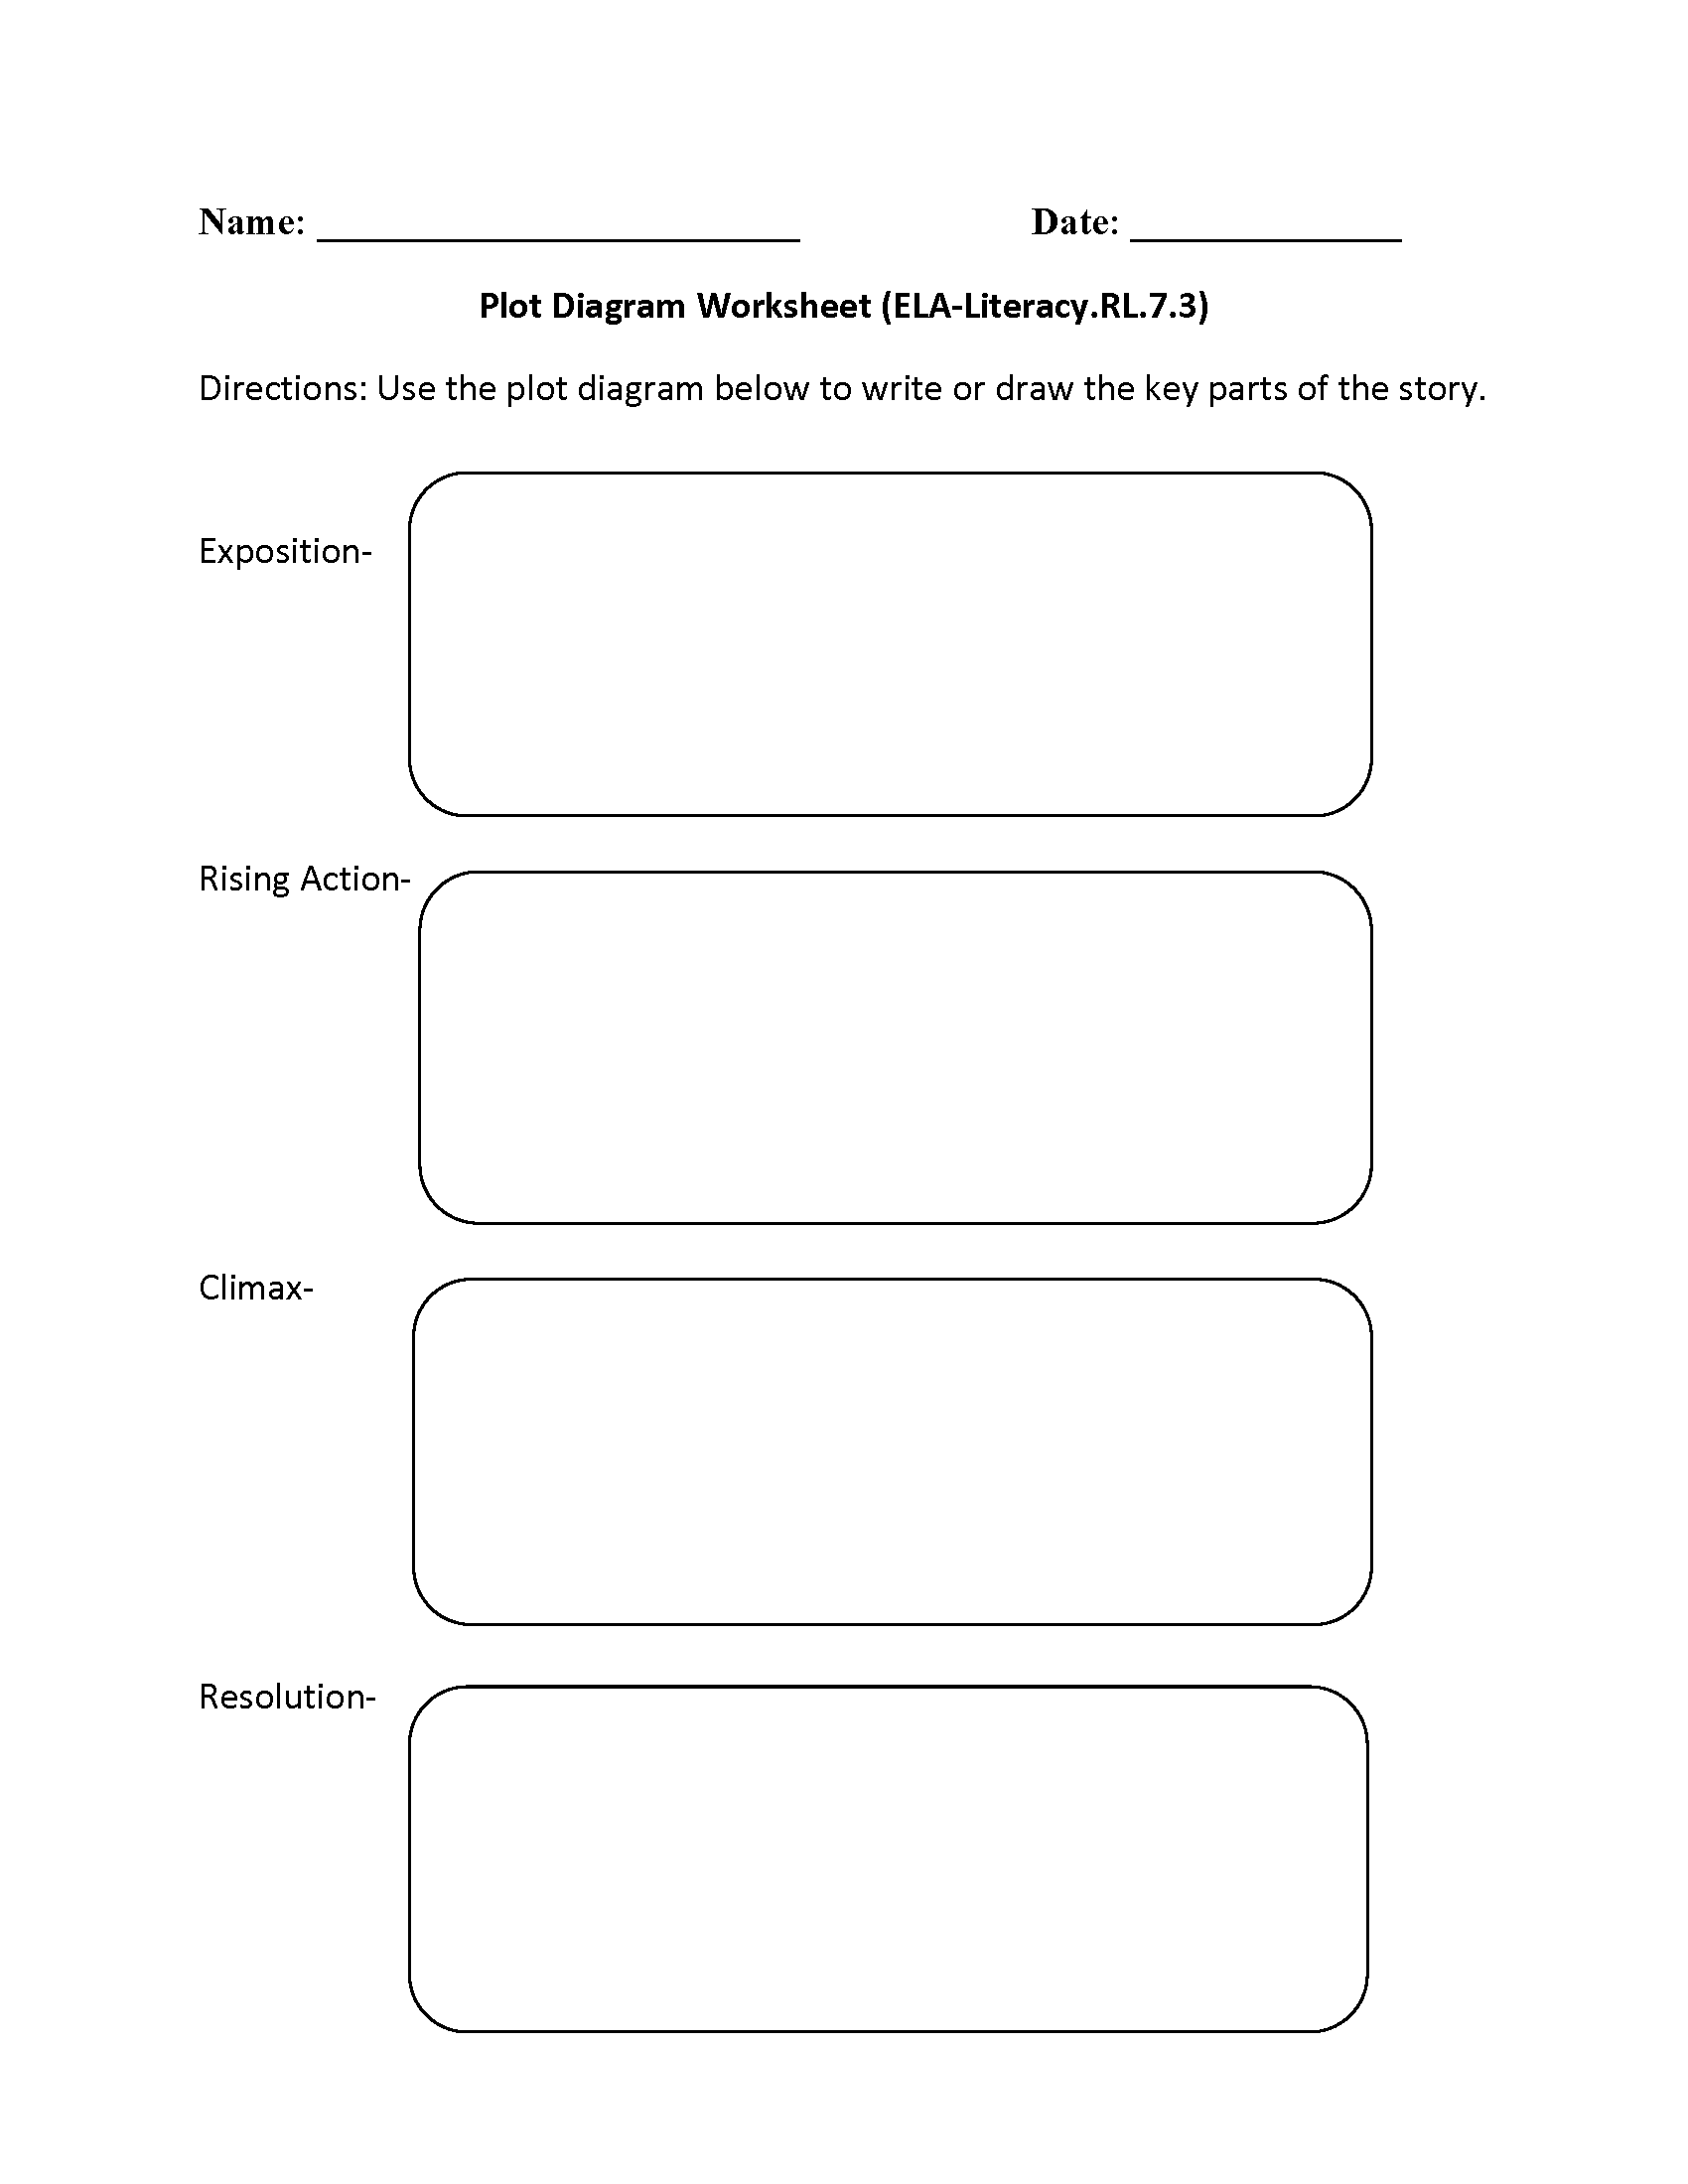 worksheet Reading Worksheets For 7th Grade 7th grade common core reading literature worksheets worksheet